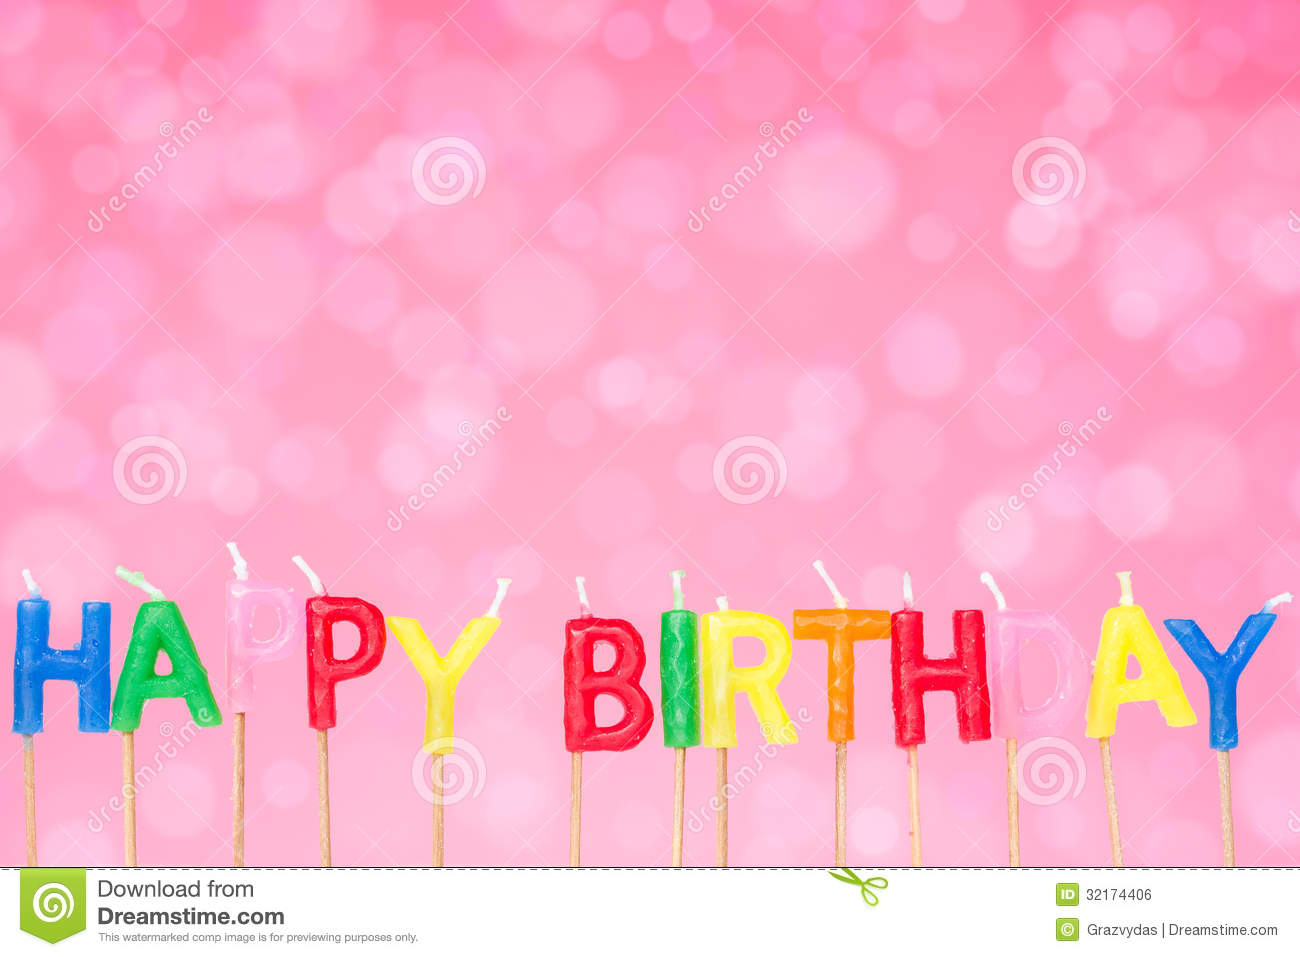 birthday pink background ; birthday-candles-pink-background-happy-festive-32174406